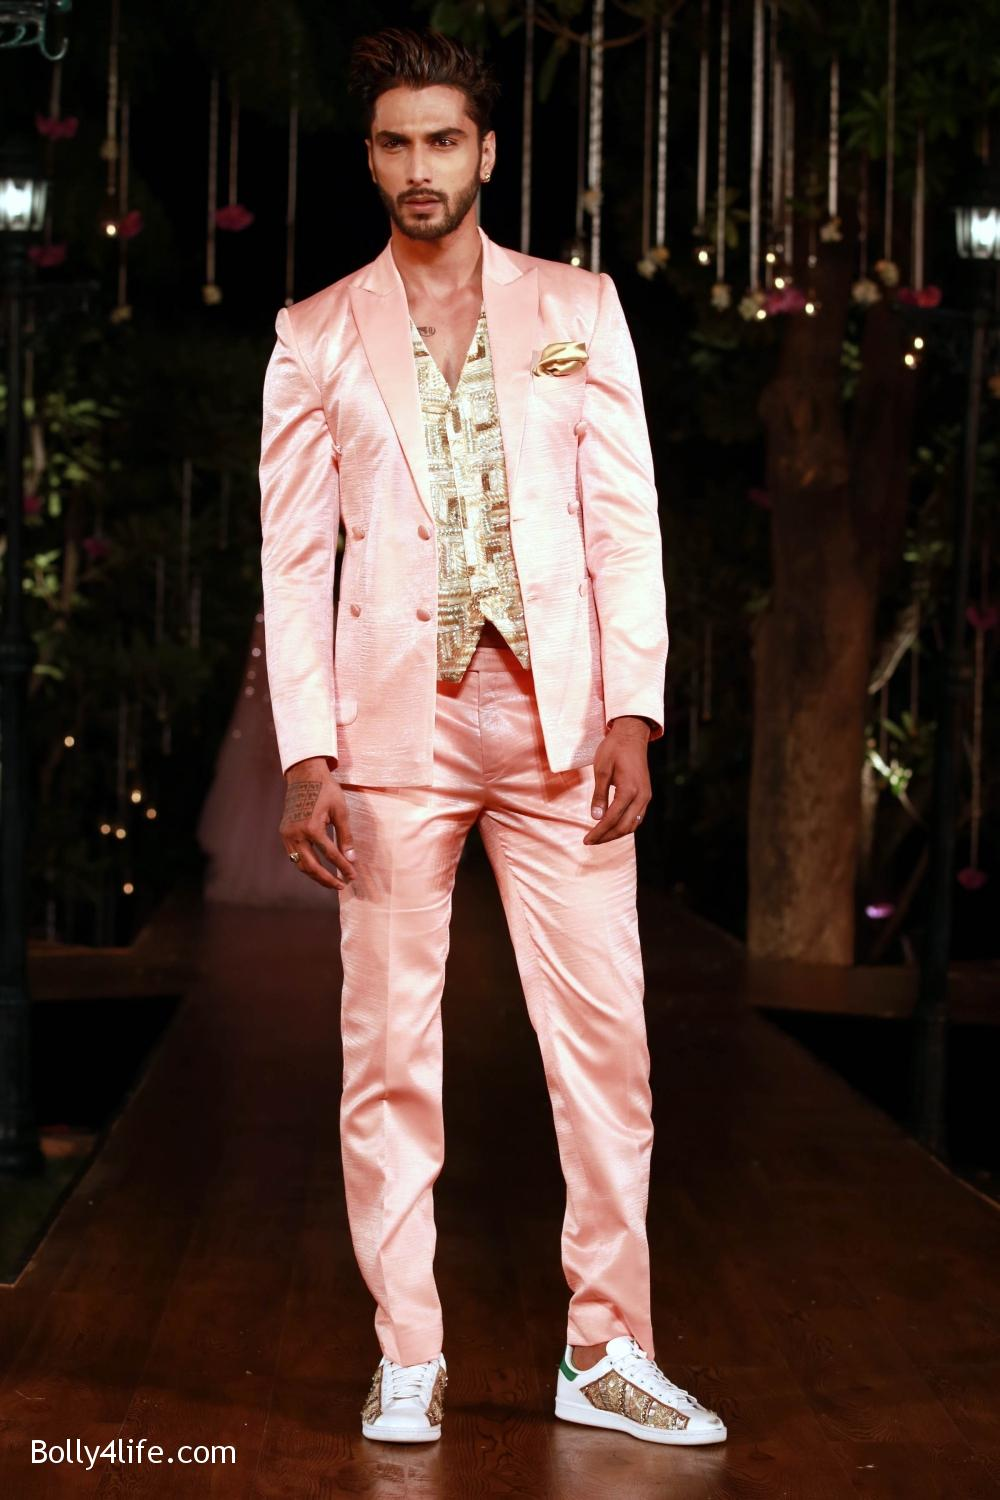 Divani-Fashion-Show-Ranveer-Singh-and-Vaani-Kapoor-16.jpg